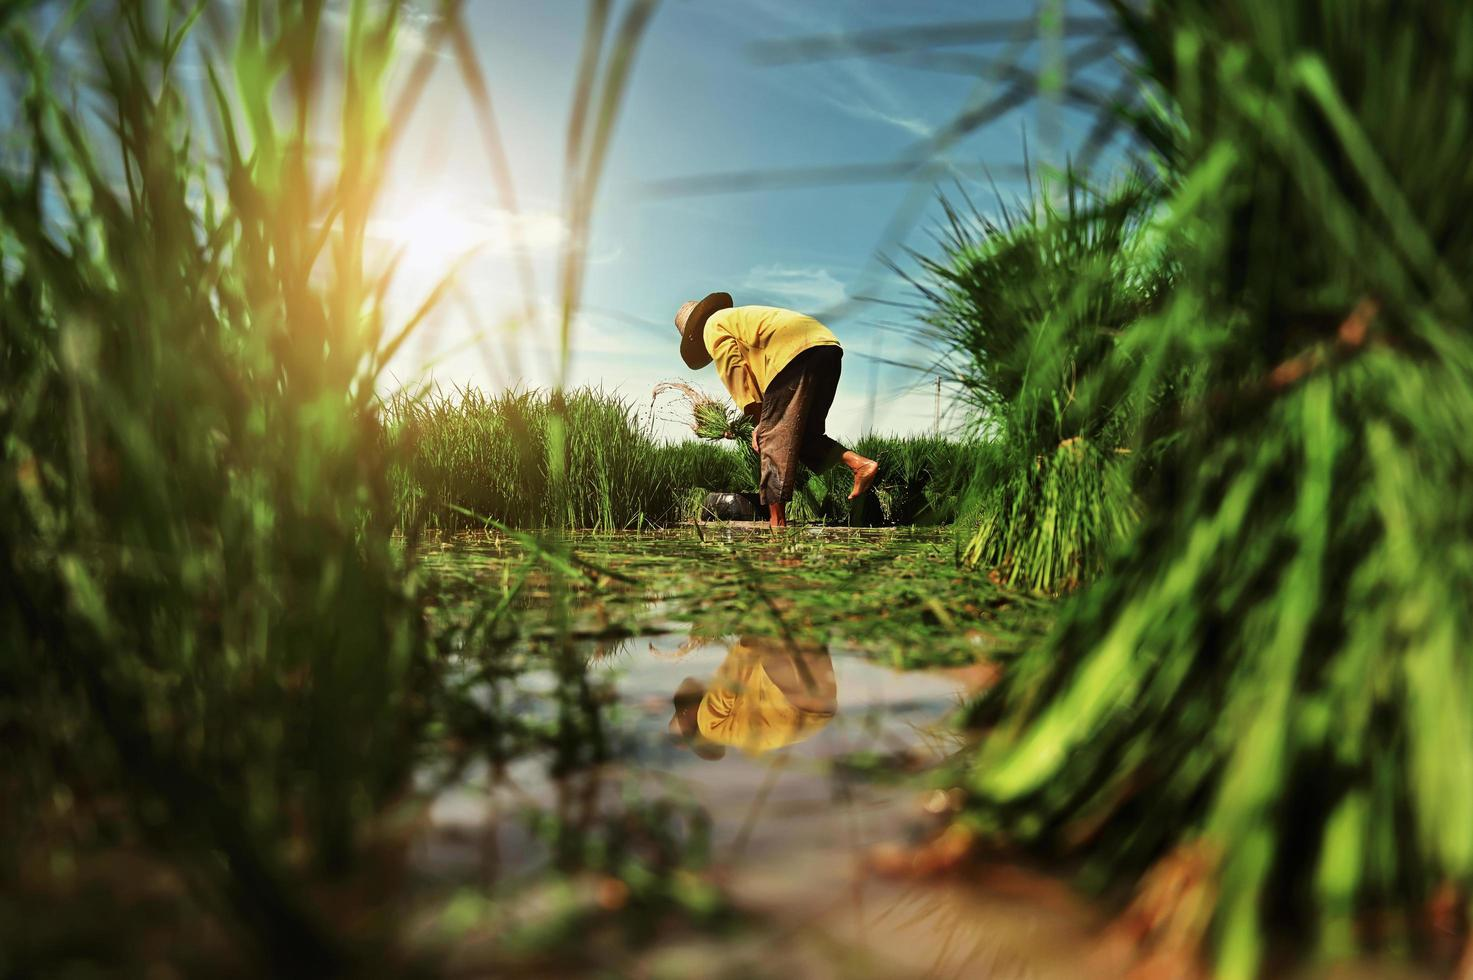 Person planting in rice field photo